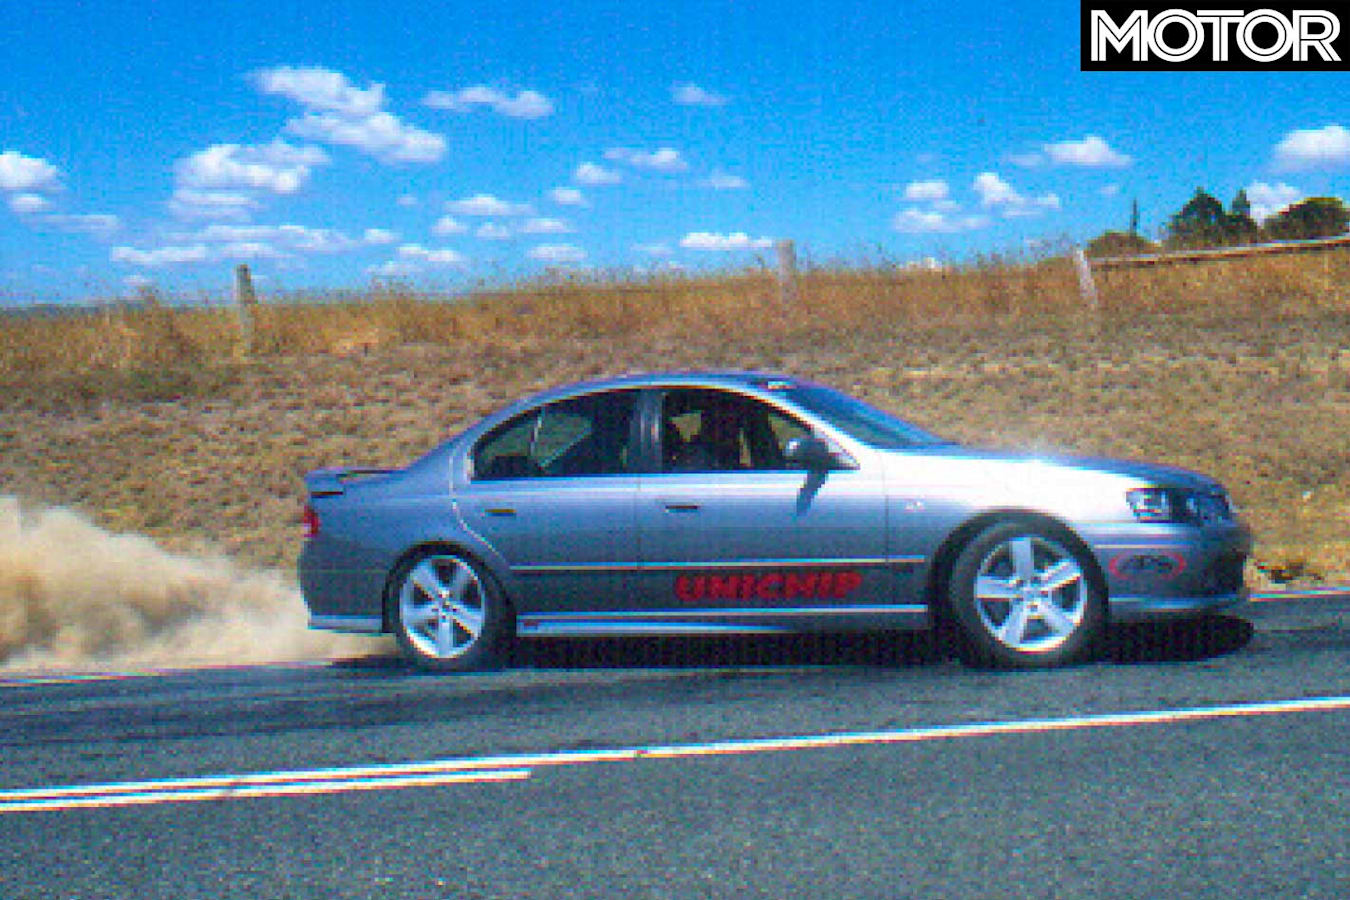 2004 APS Falcon Phase III XR 6 T Hot Tuner Wheelspin Jpg